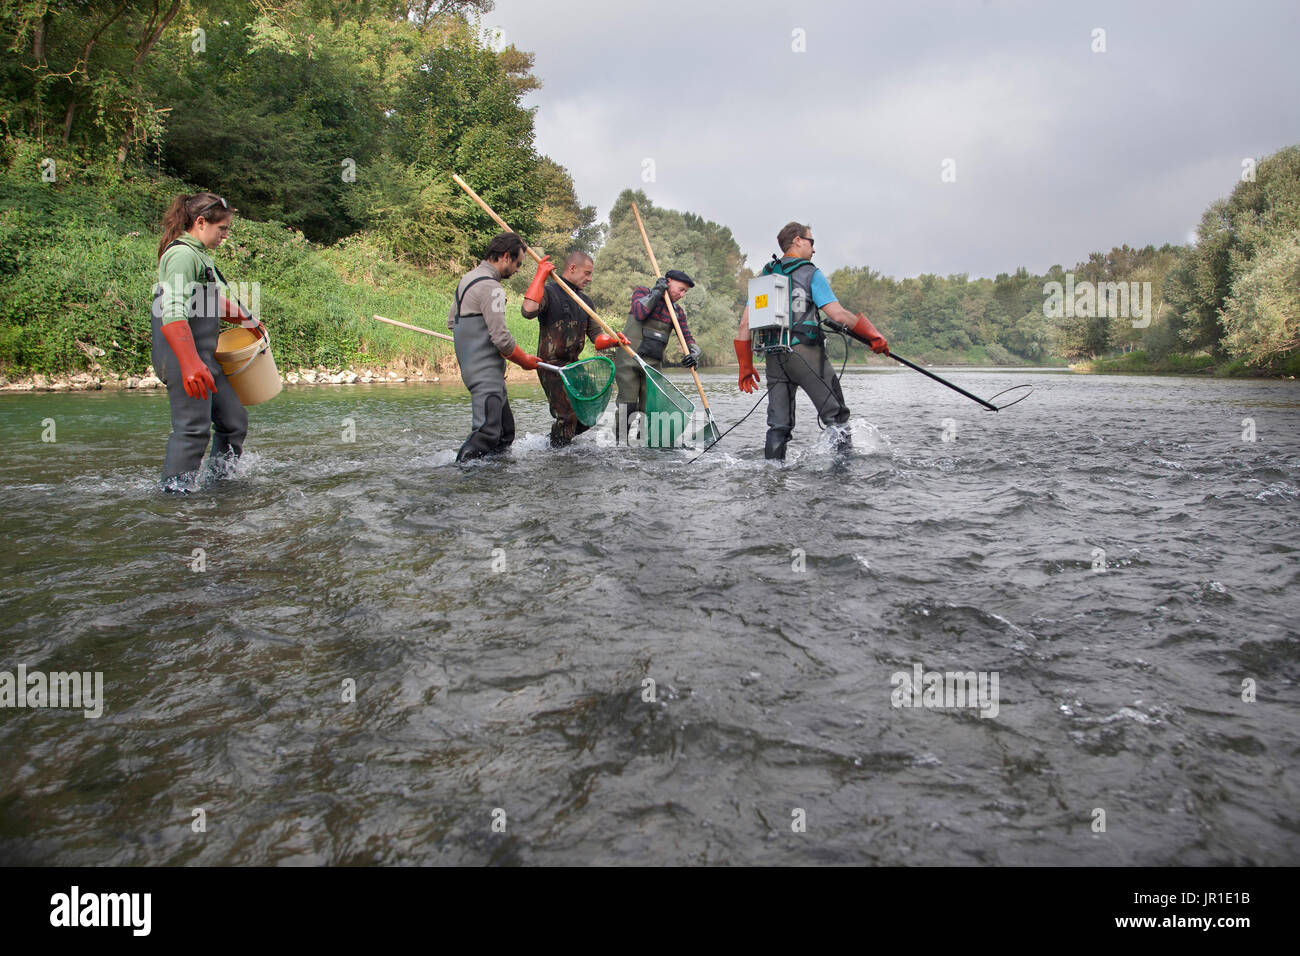 Atlantic salmon (Salmo salar) electric fishing on the Vieux-Rhin by the Saumon Rhin team, Search of the young fishes Stock Photo